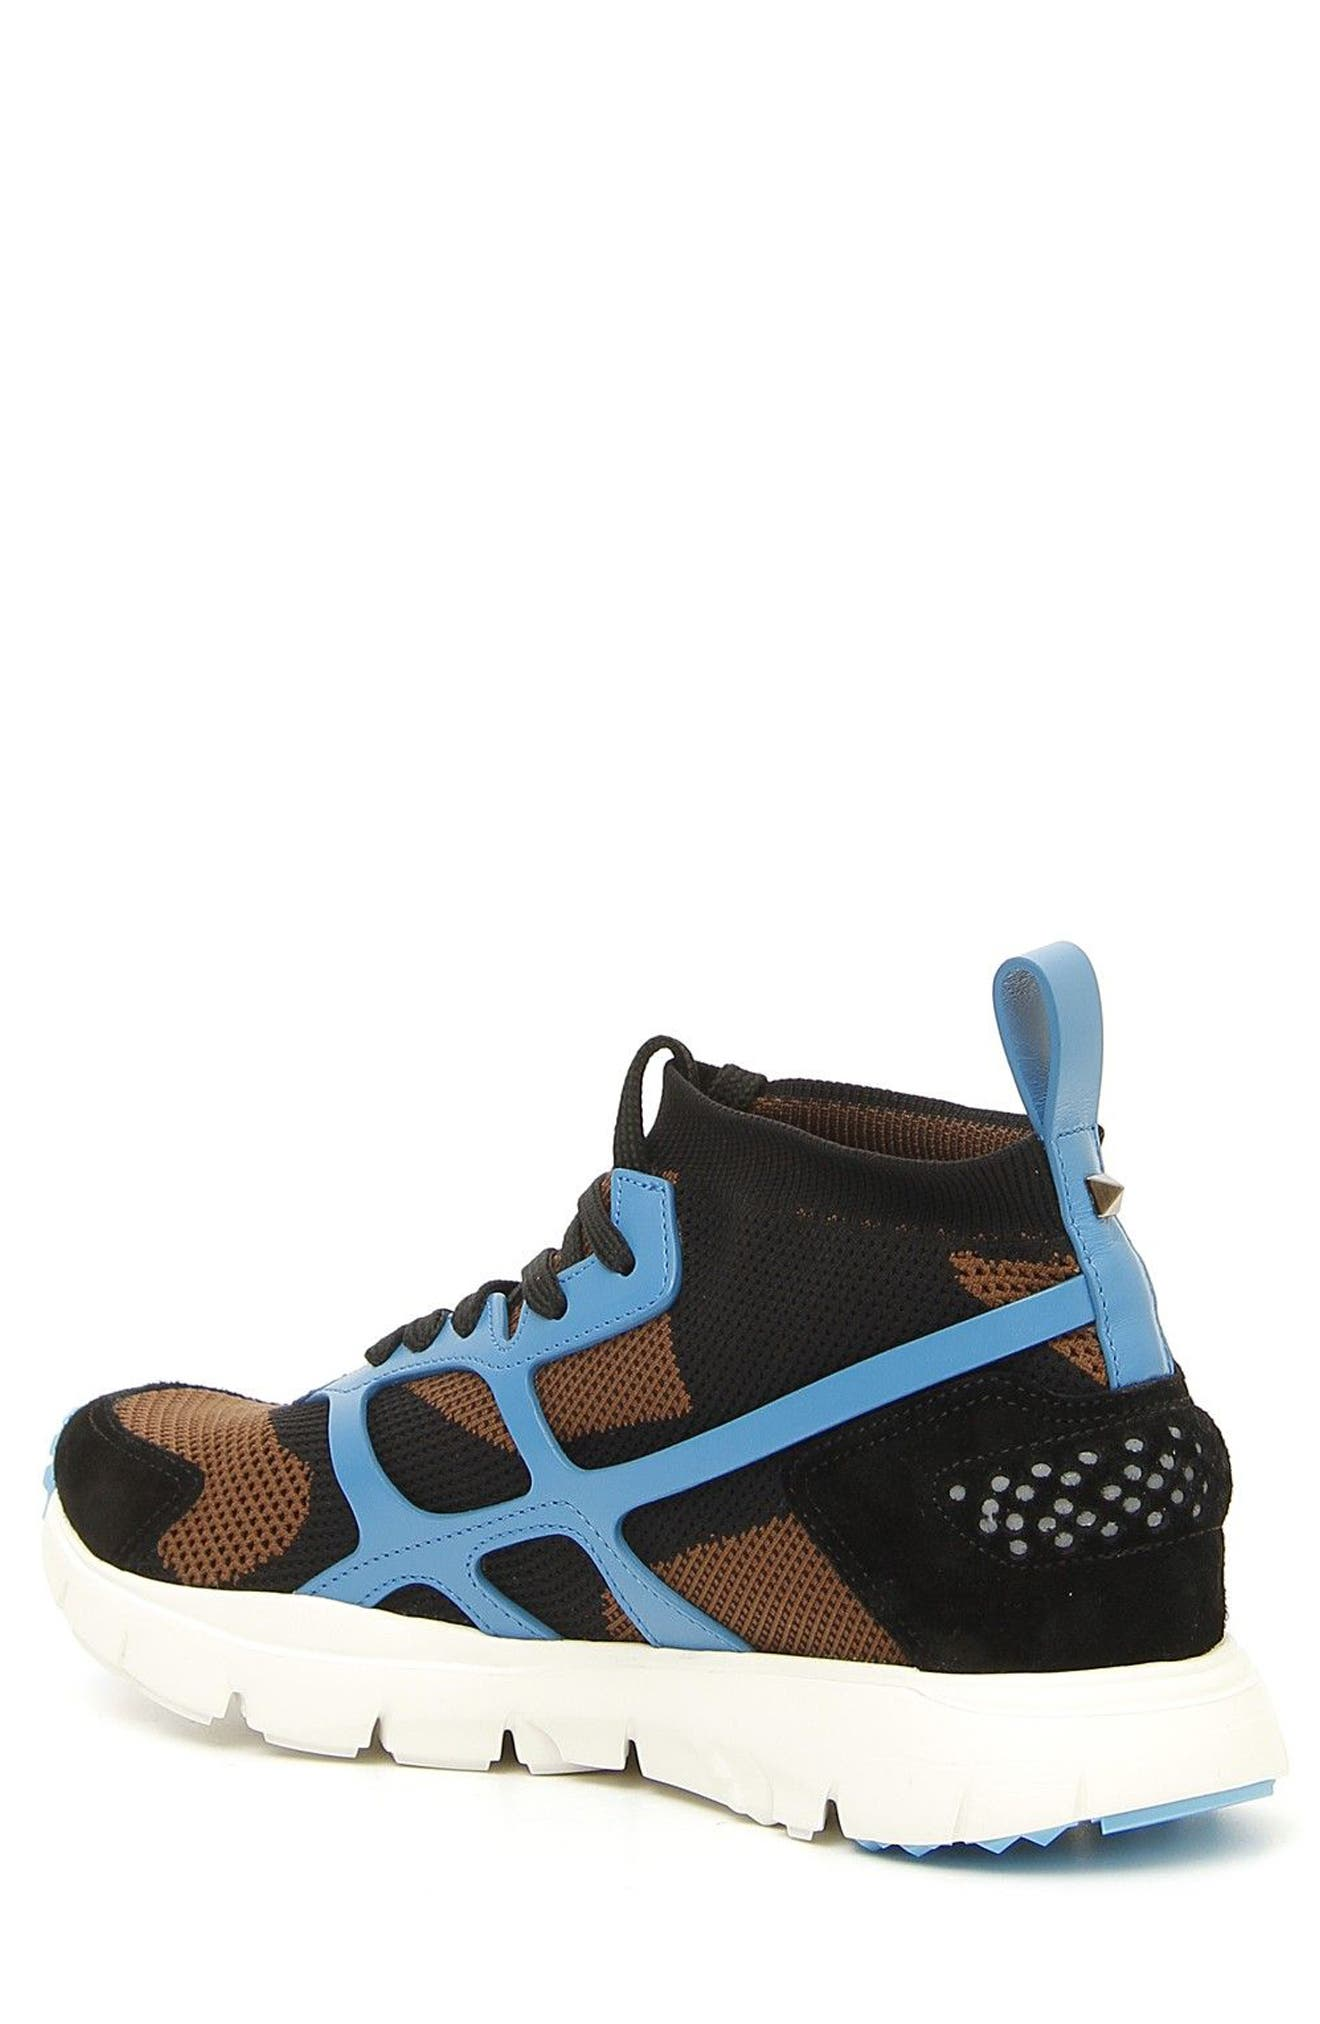 Sound High Sneaker,                             Alternate thumbnail 2, color,                             Army Green/ Nero/ Pool Blue